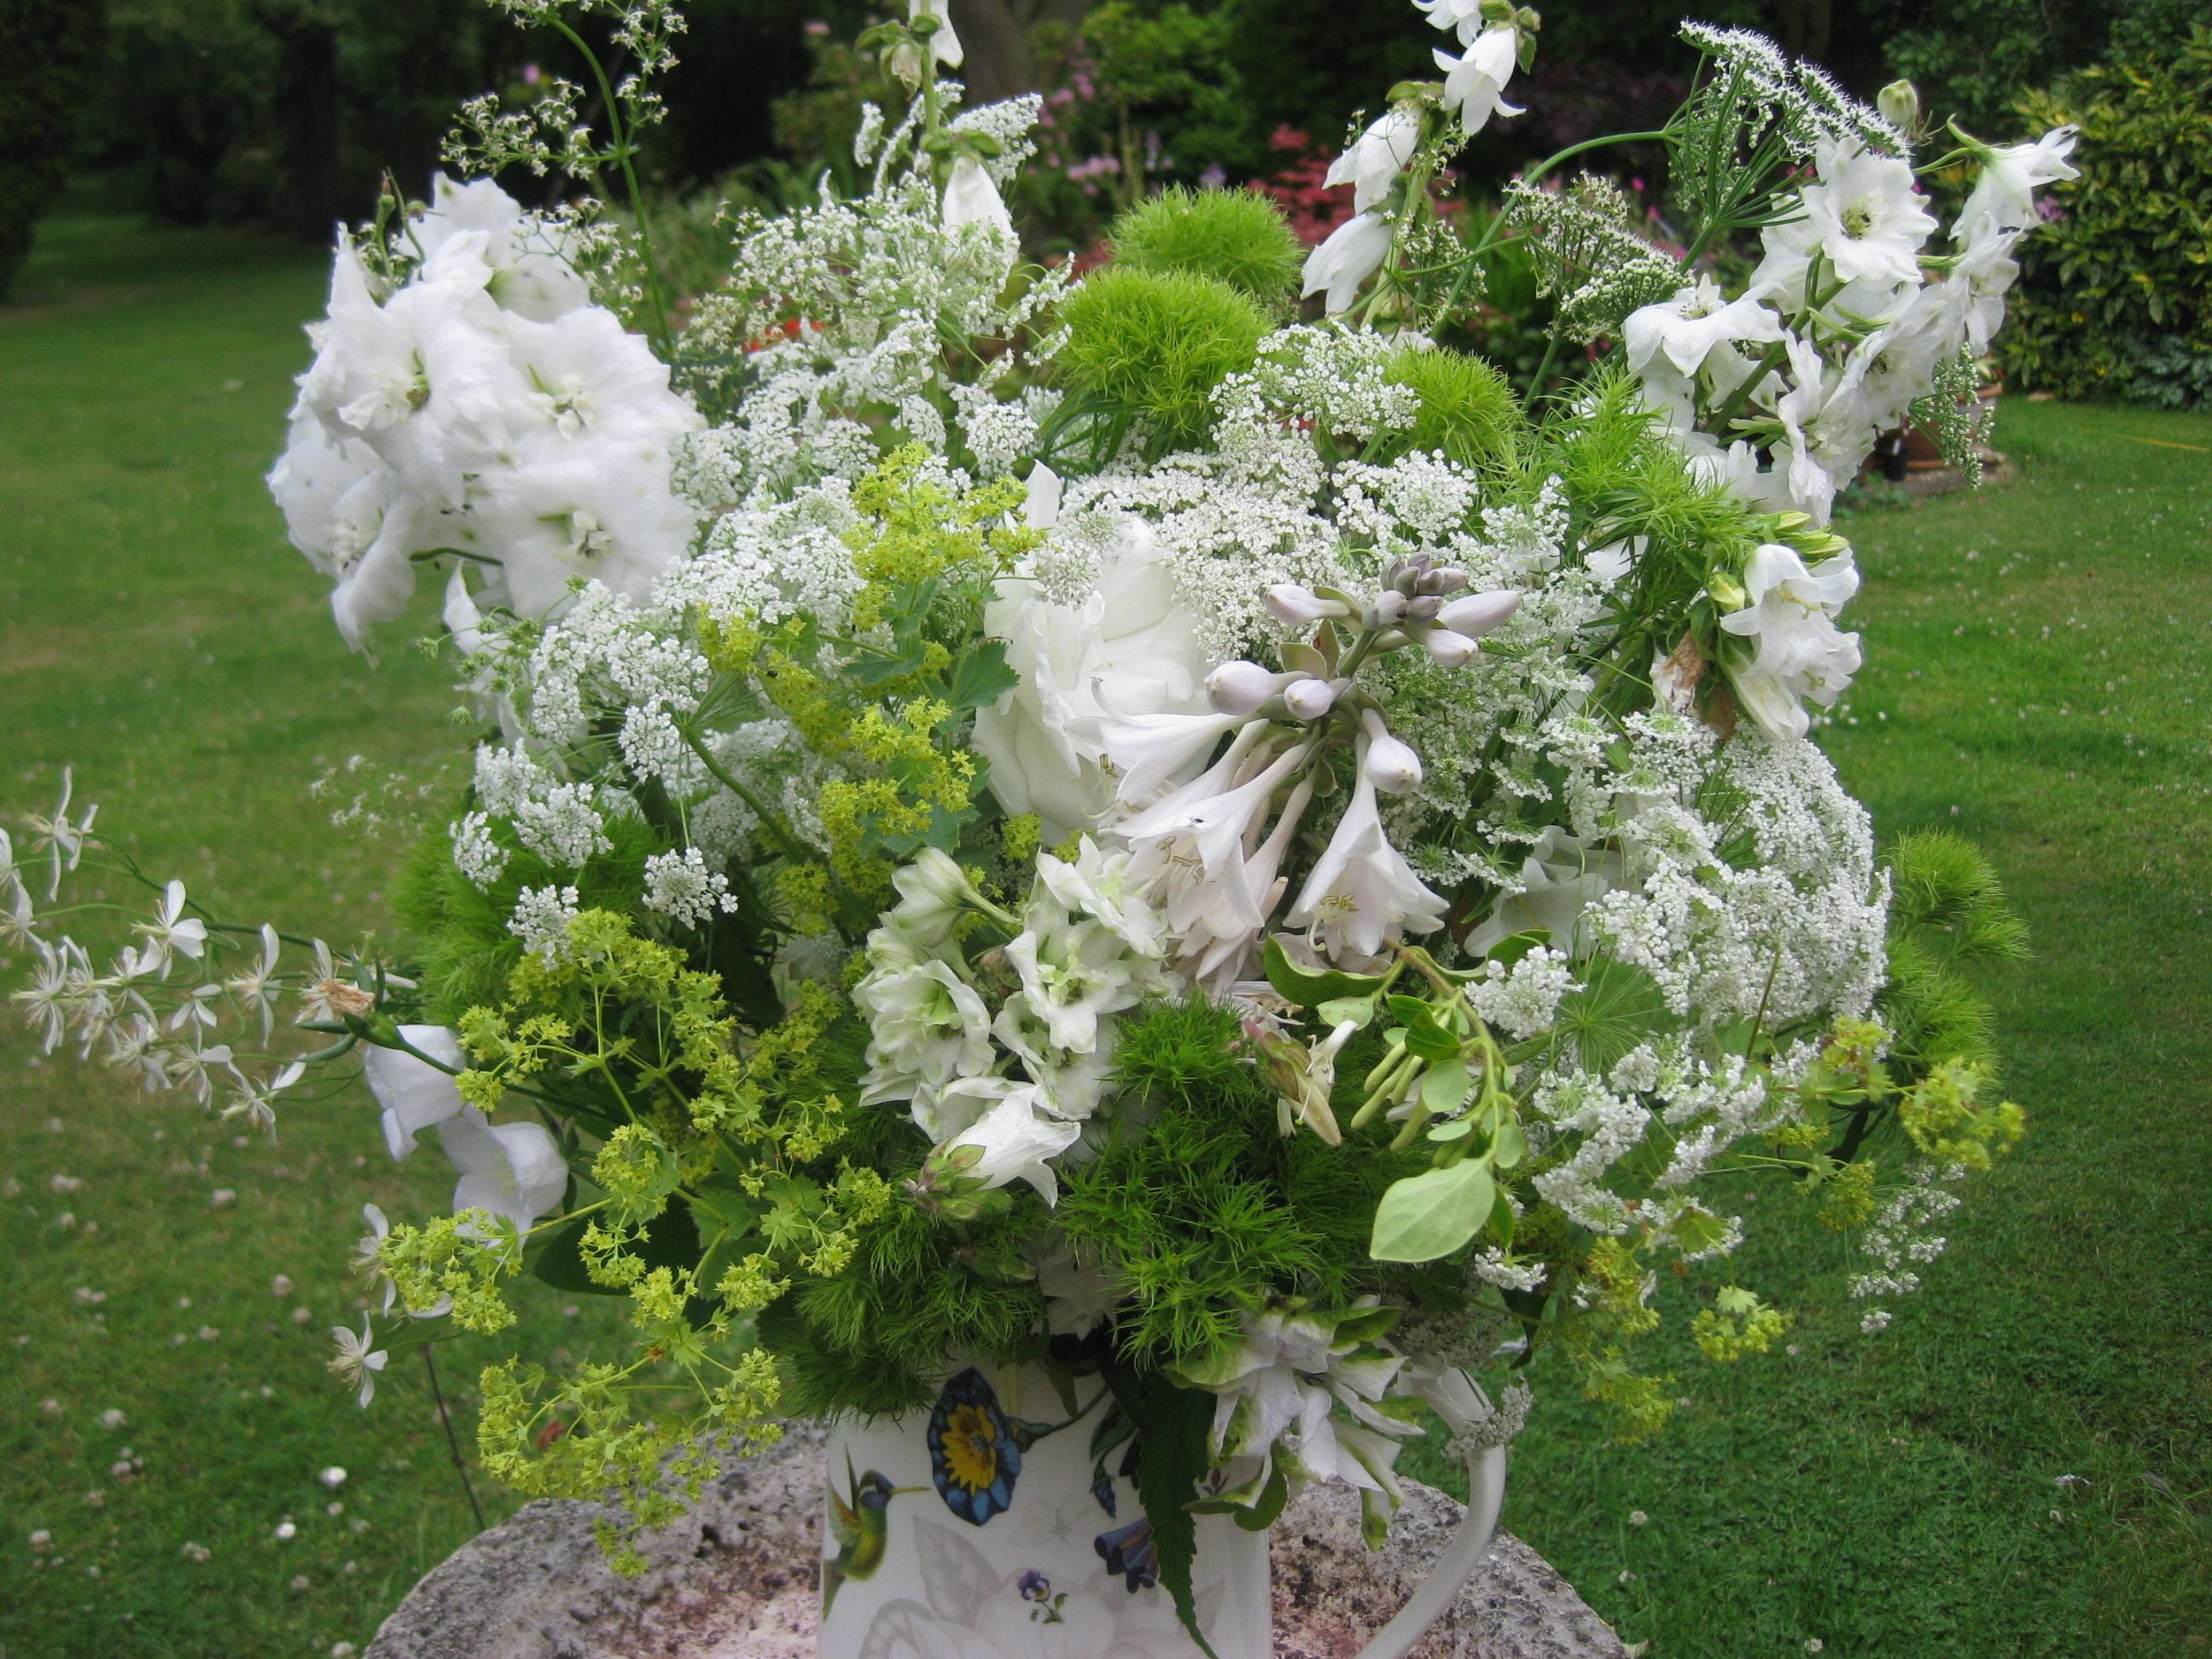 In a vase on monday white foam the blooming garden img0203 mightylinksfo